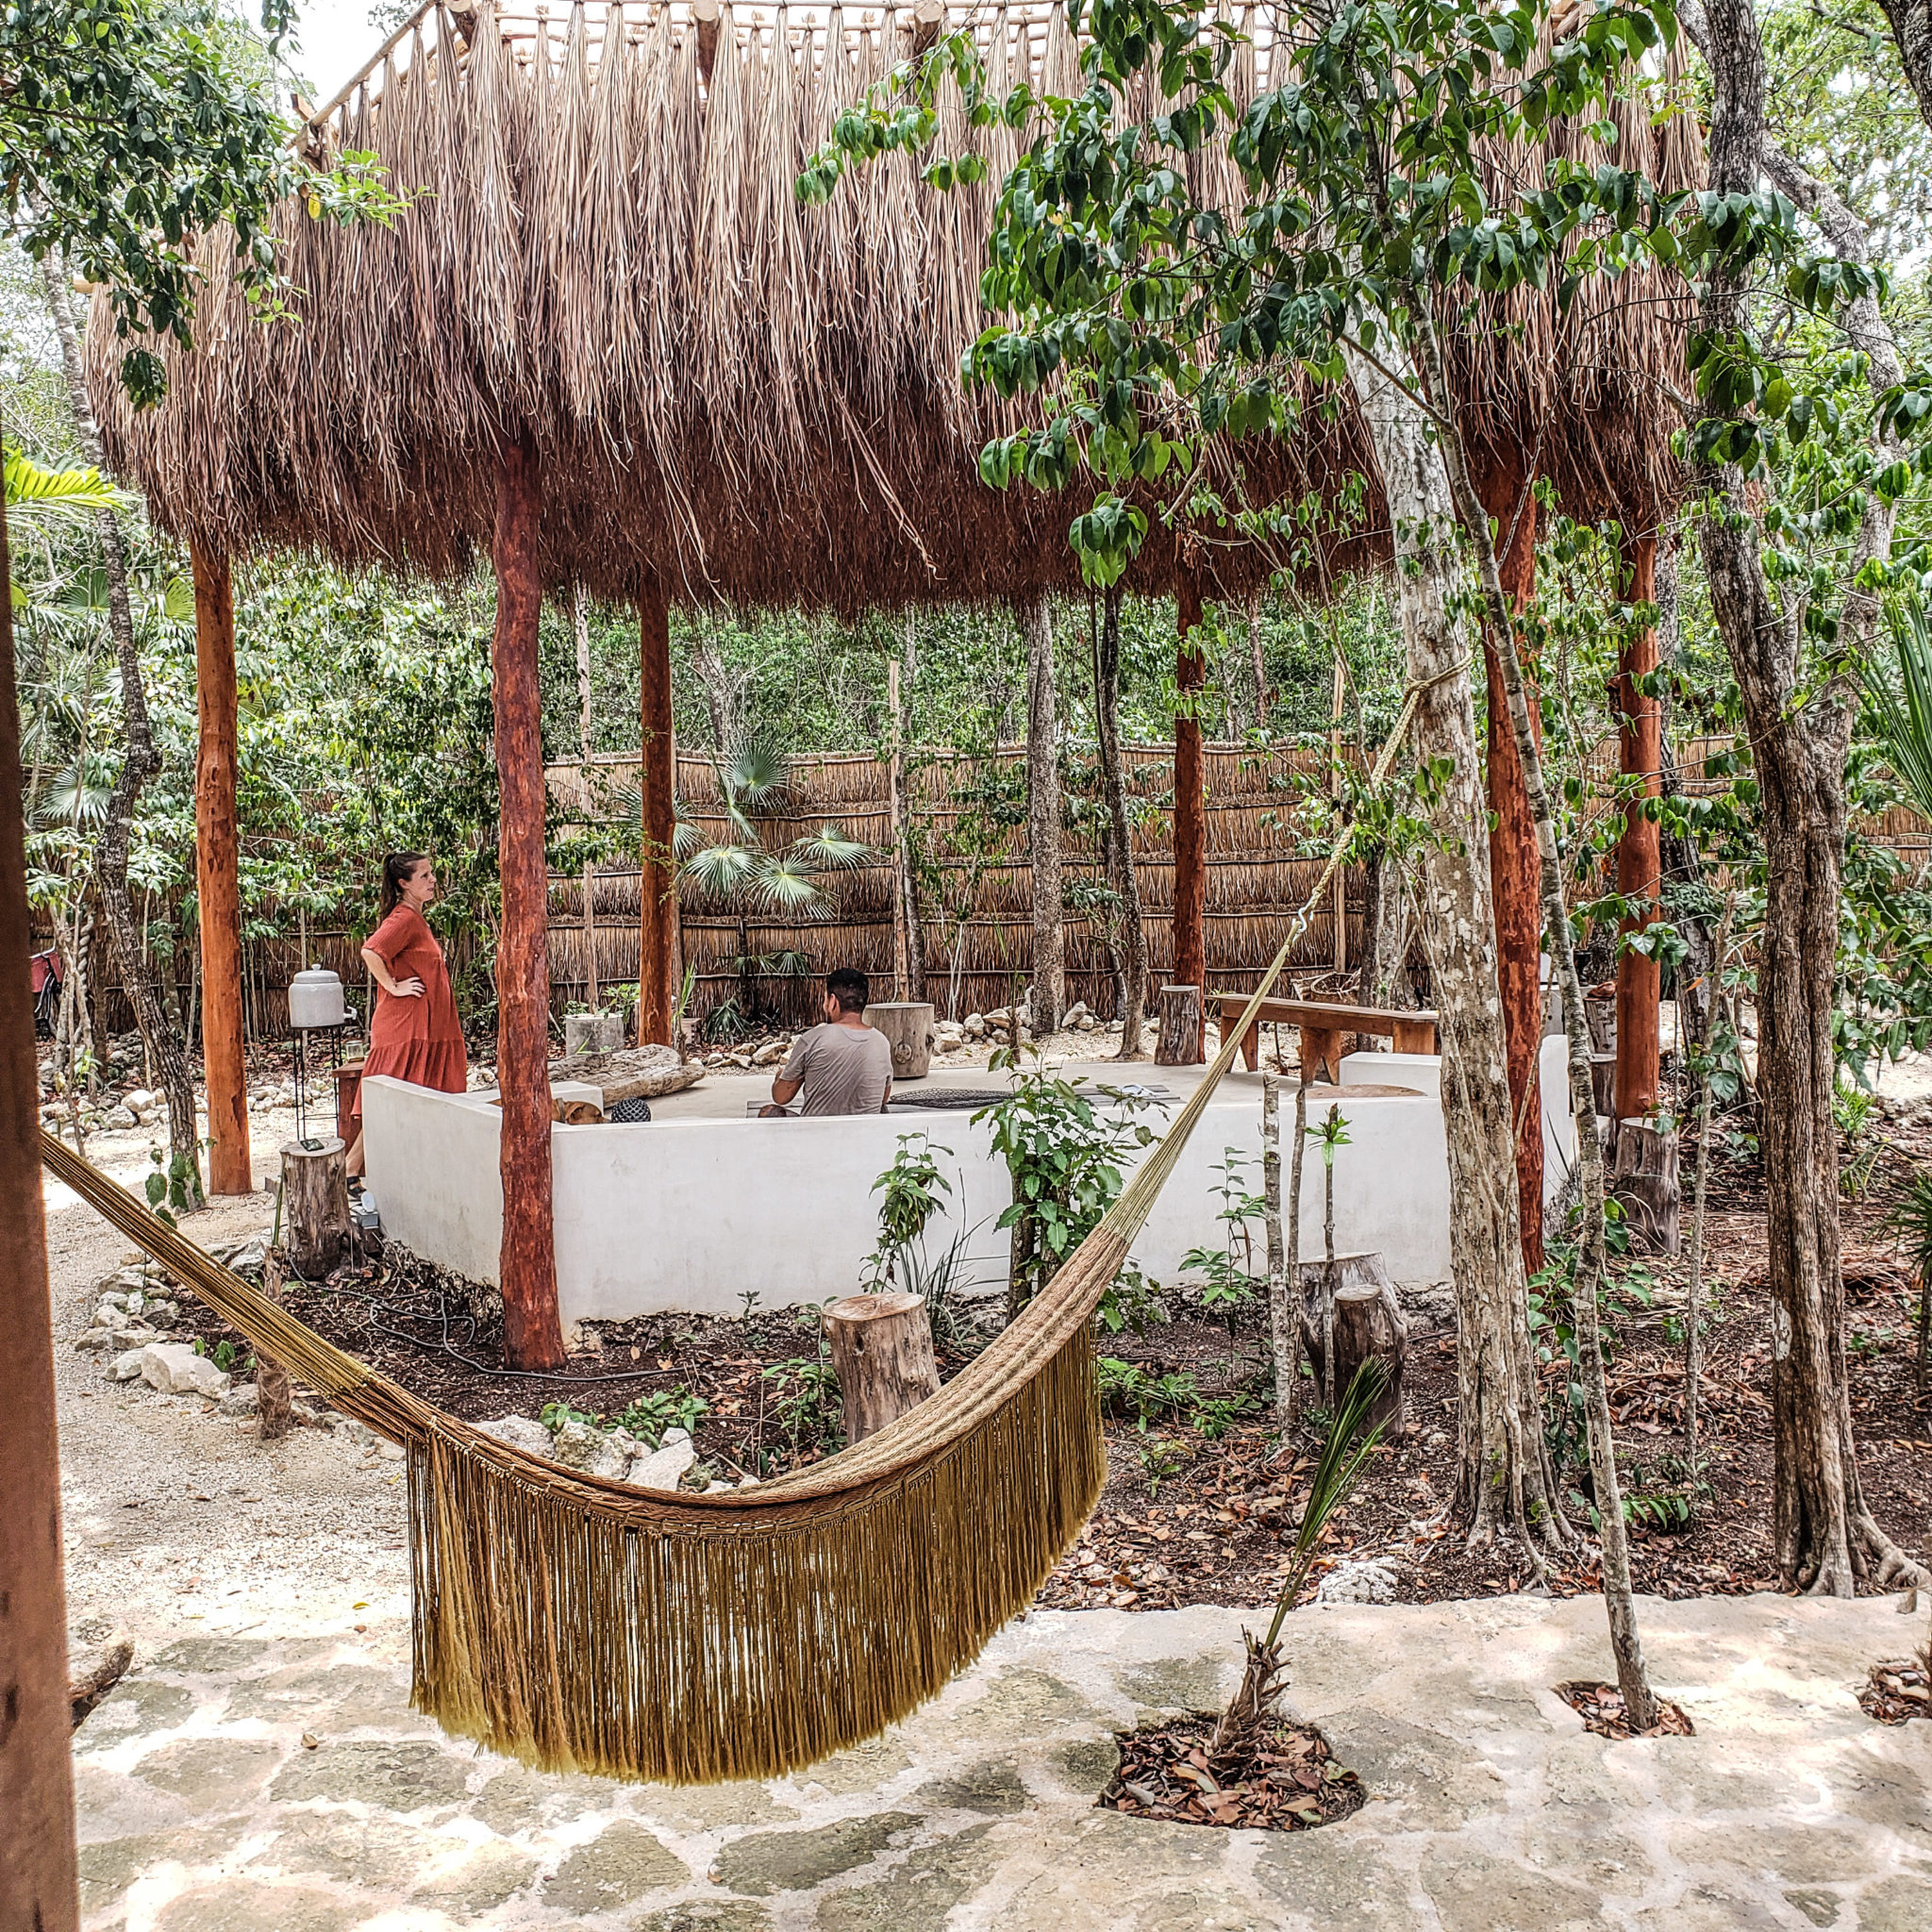 ACACIA Jungle Bungalows: An Airbnb Oasis Hidden in the Heart of Tulum